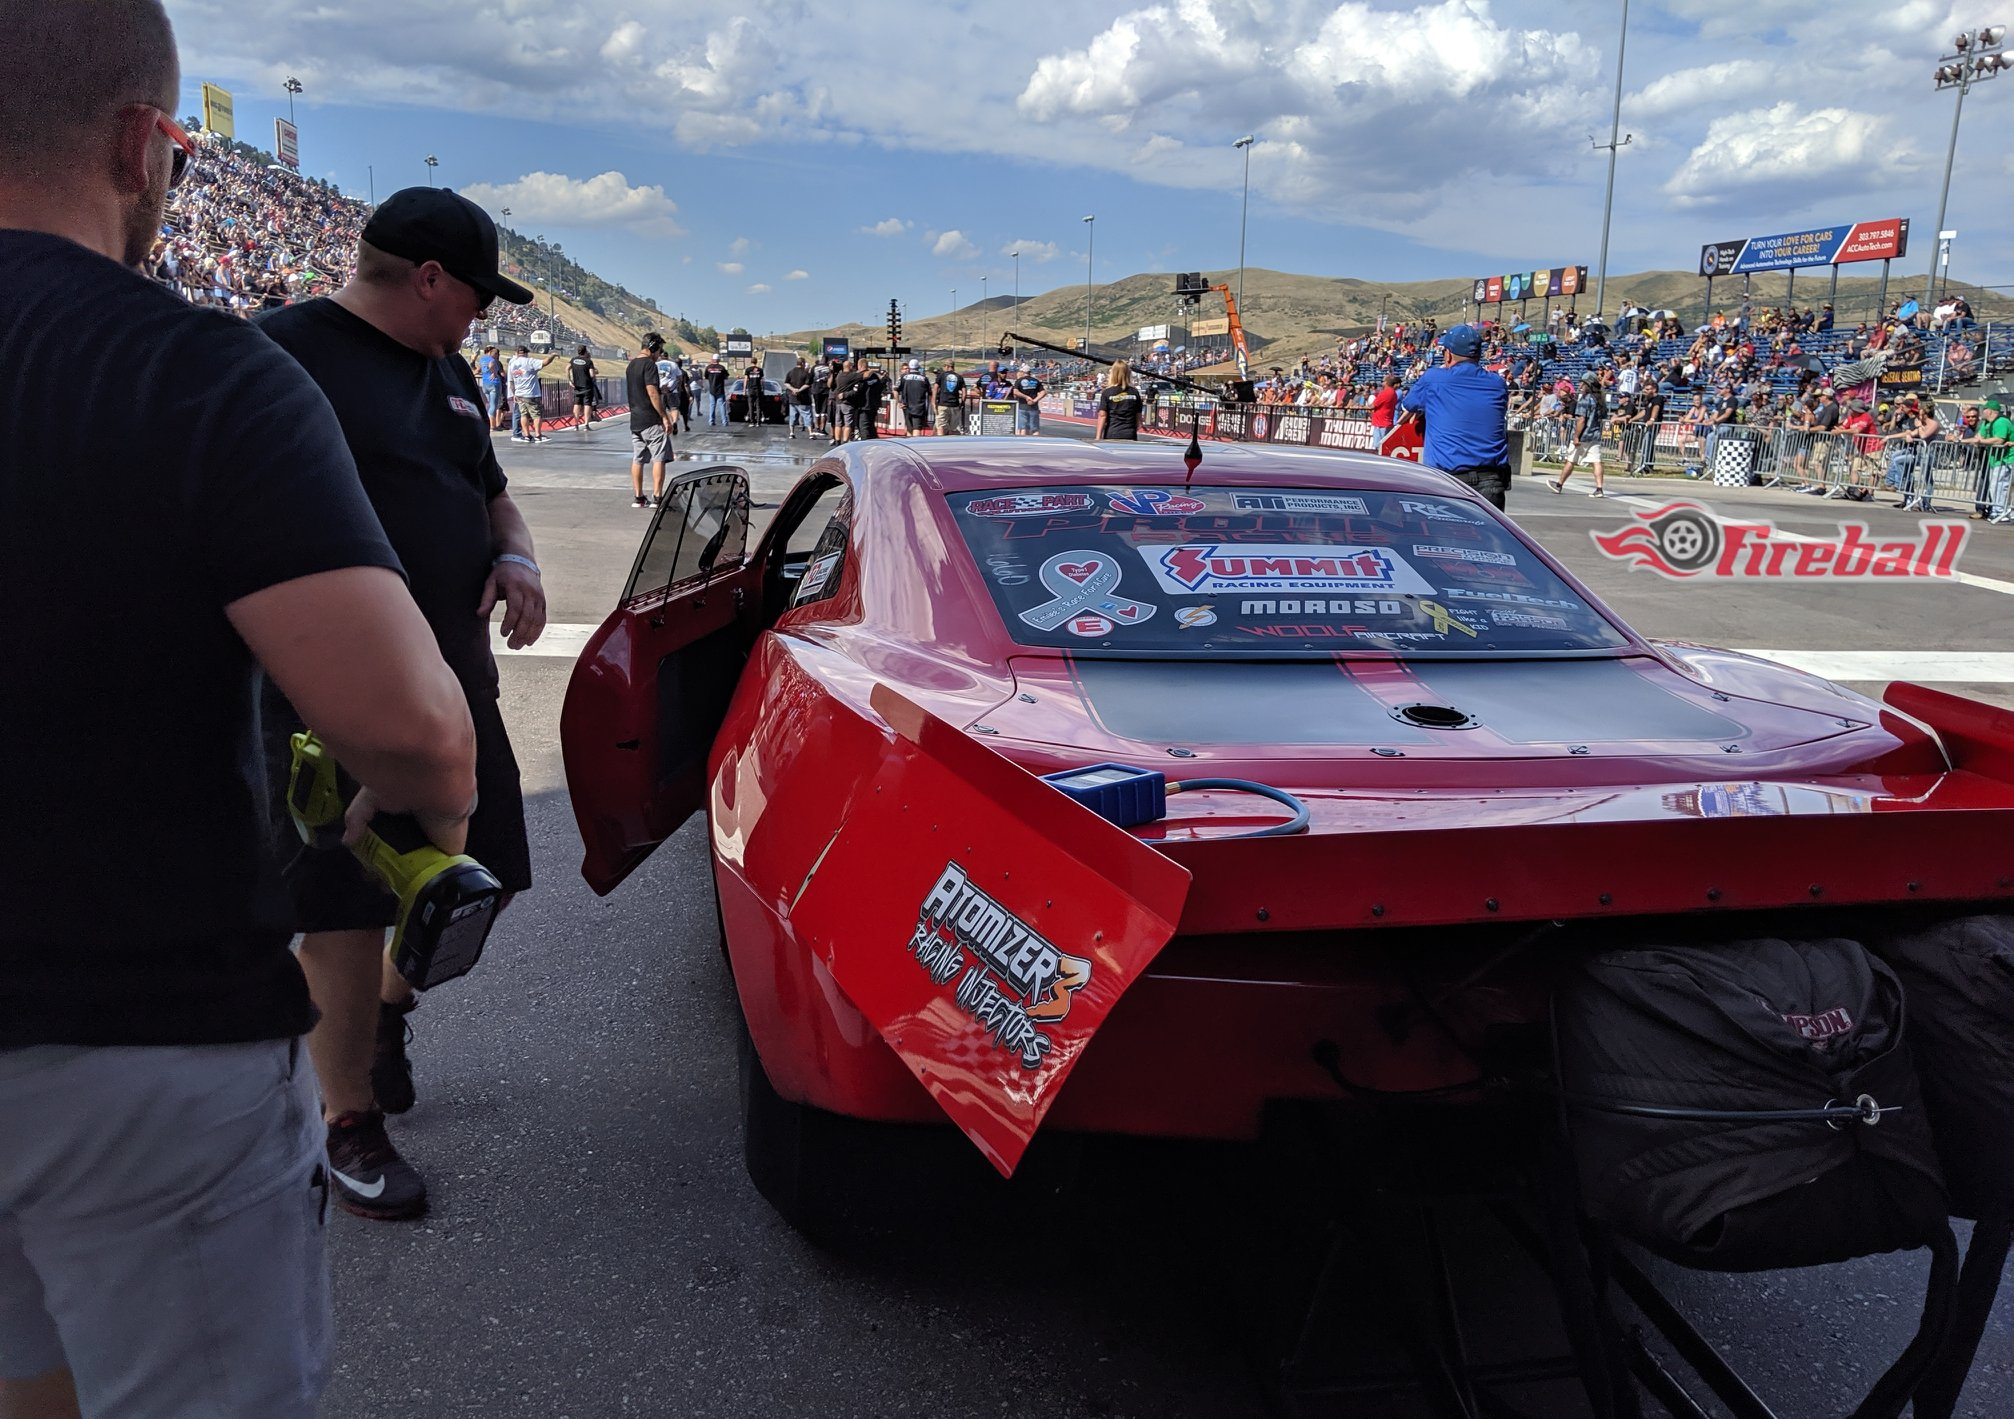 Fireball Camaro, driven by Ryan Martin, in the staging lane waiting to make a pass of the Street Outlaws No Prep Kings Season 3 event